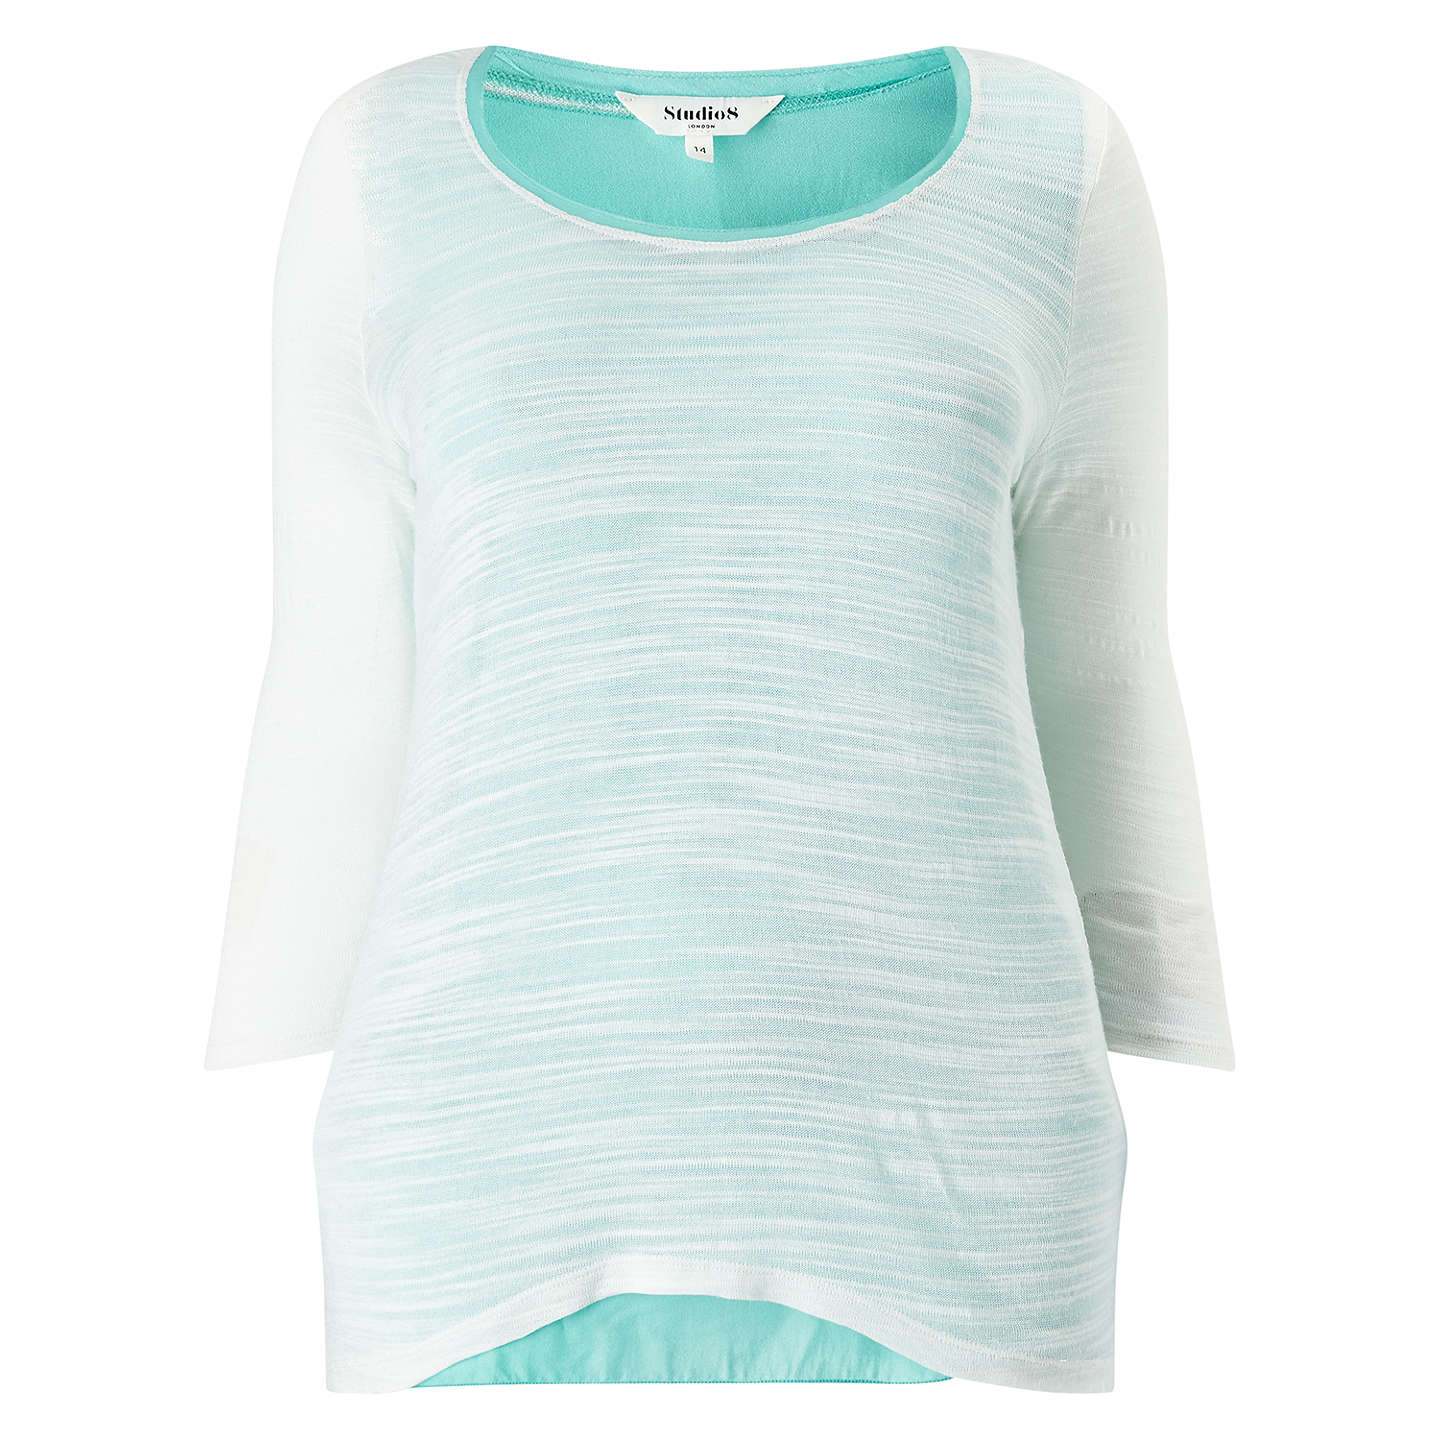 BuyStudio 8 Milly Top, Cream/Aqua, 14 Online at johnlewis.com